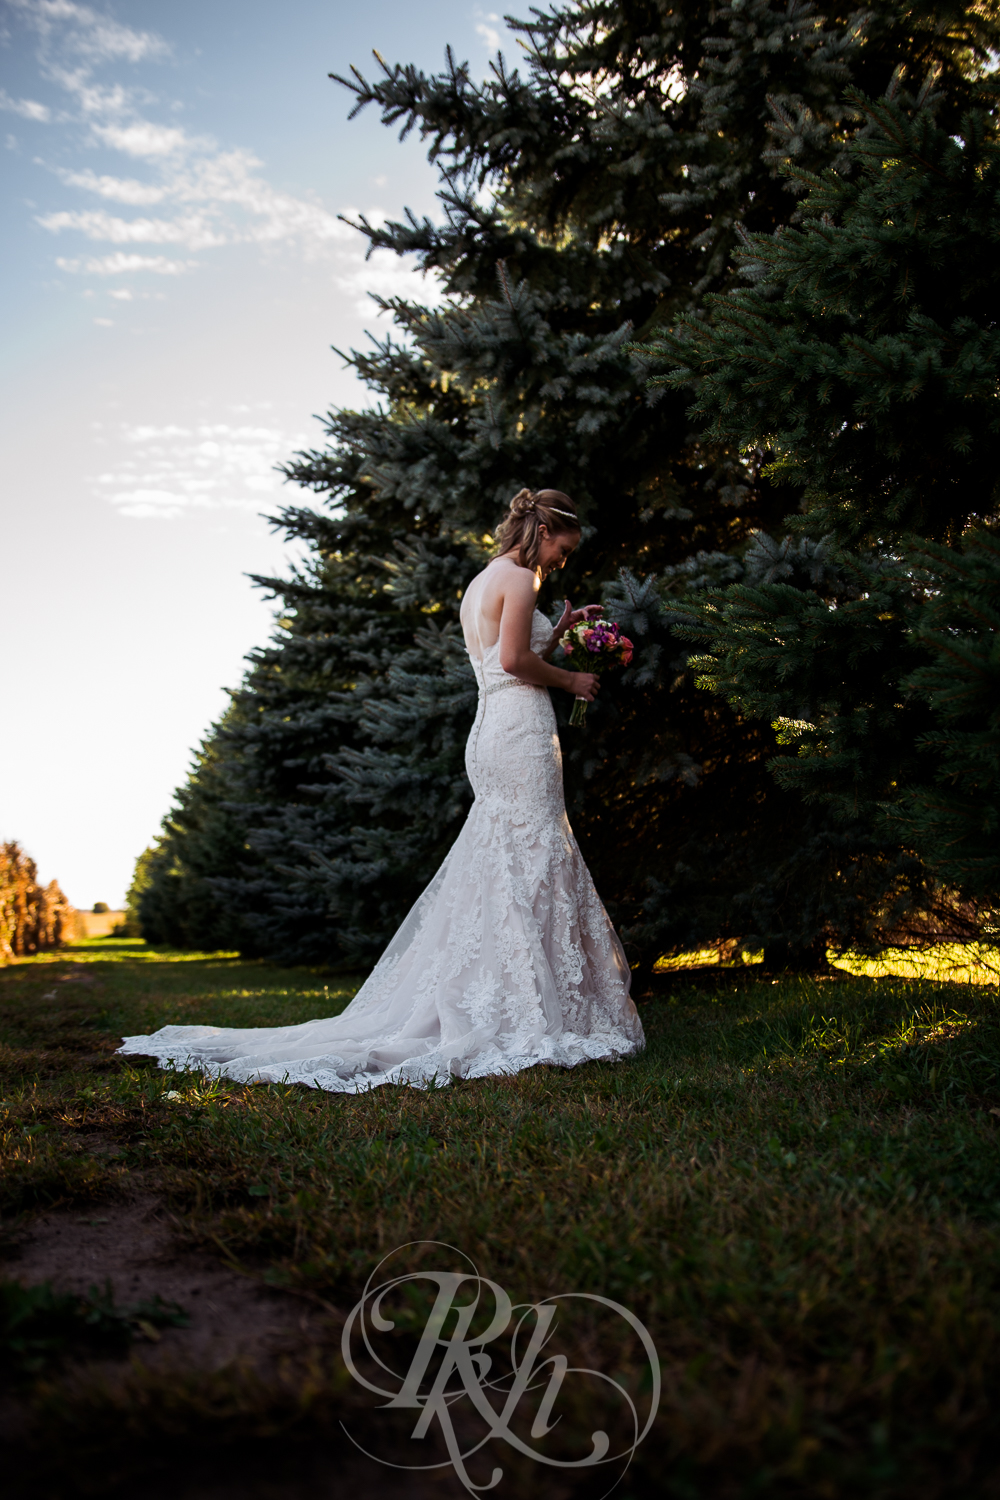 Katie & Garrett - Minnesota Wedding Photography - RKH Images - Blog -26.jpg